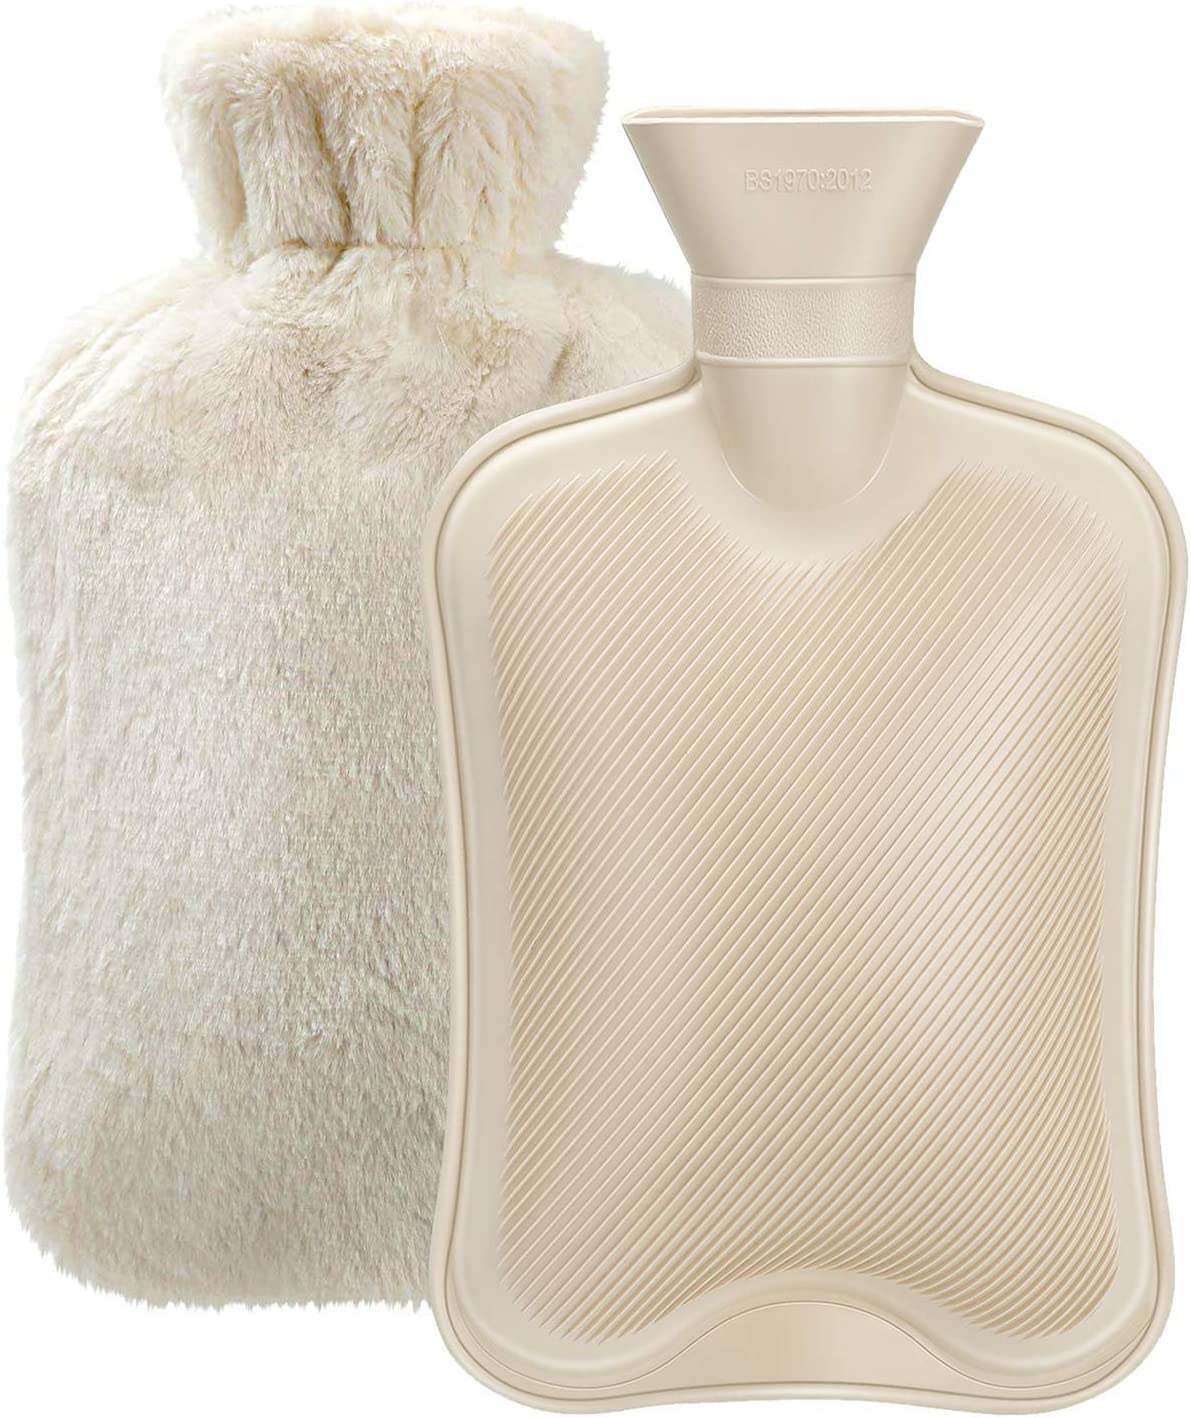 Hot Water Bottle with Soft Cover (2 Liter) Classic Rubber Hot Water Bag for Cramps, Neck, Shoulders Pain Relief, Hot Cold Pack for Hot and Cold Therapy and Feet Warmer, Great Gift for Women and Girls: Health & Personal Care